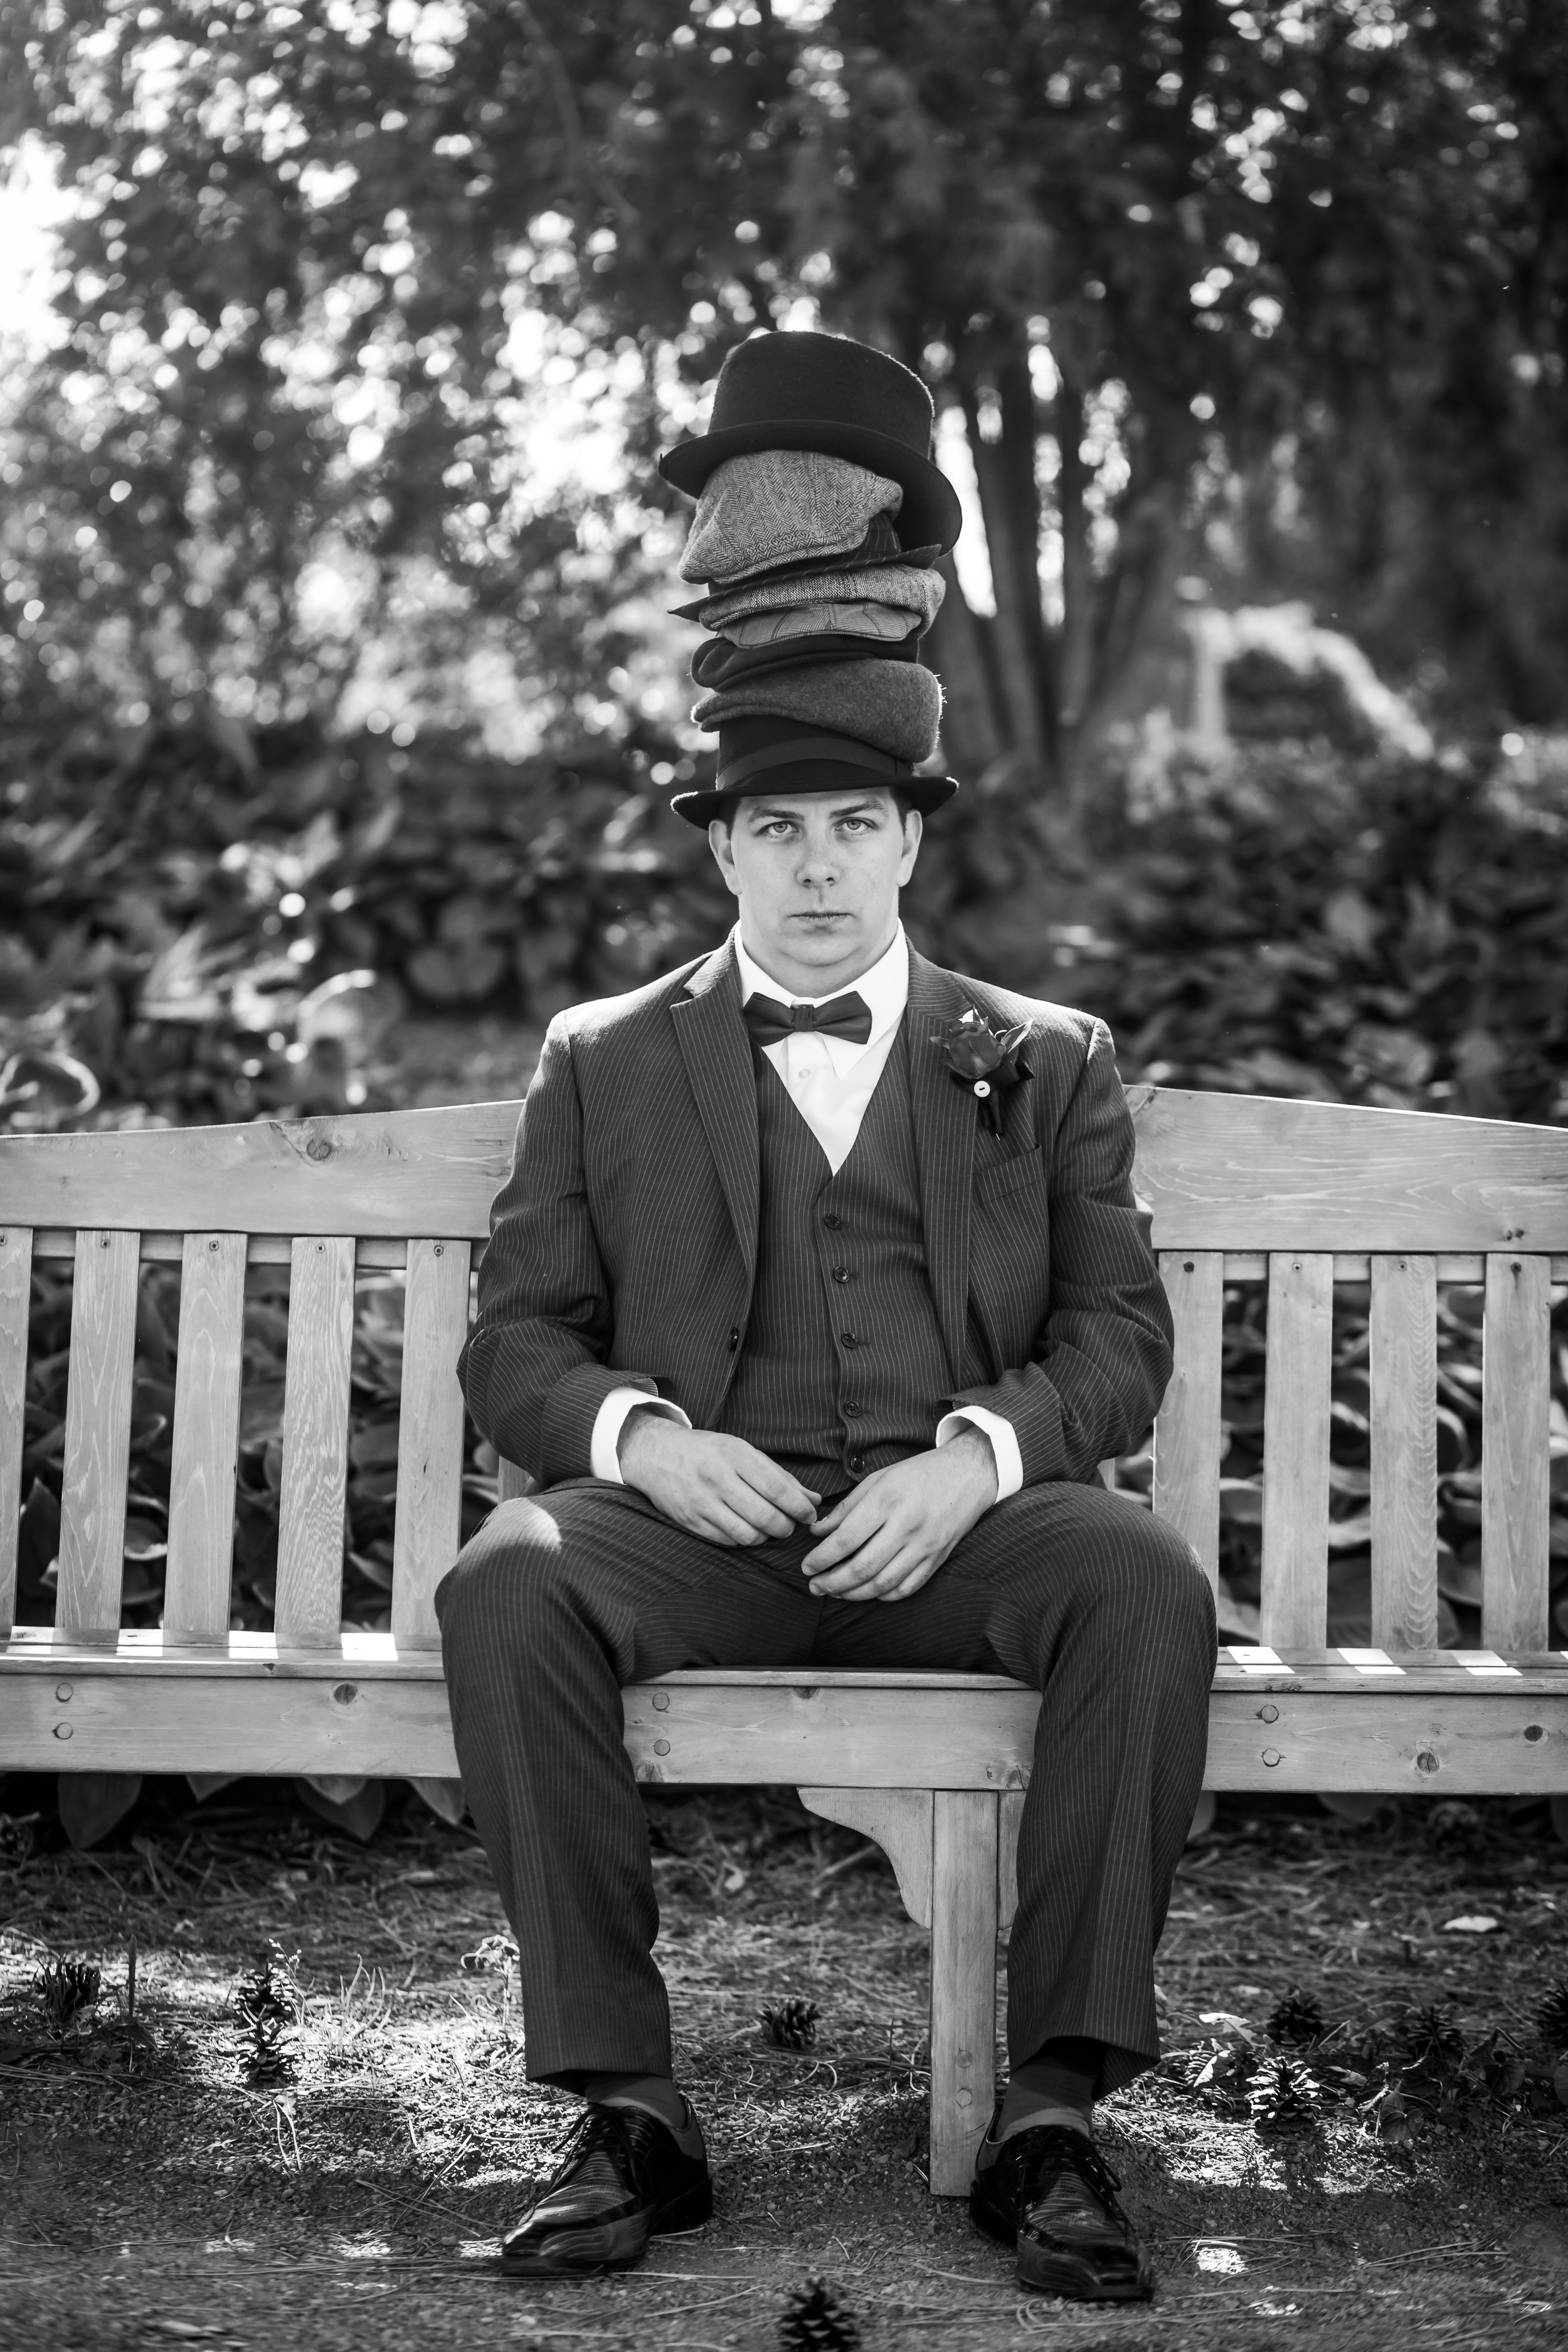 A portrait of the groom seated on a bench wearing a bunch of hats